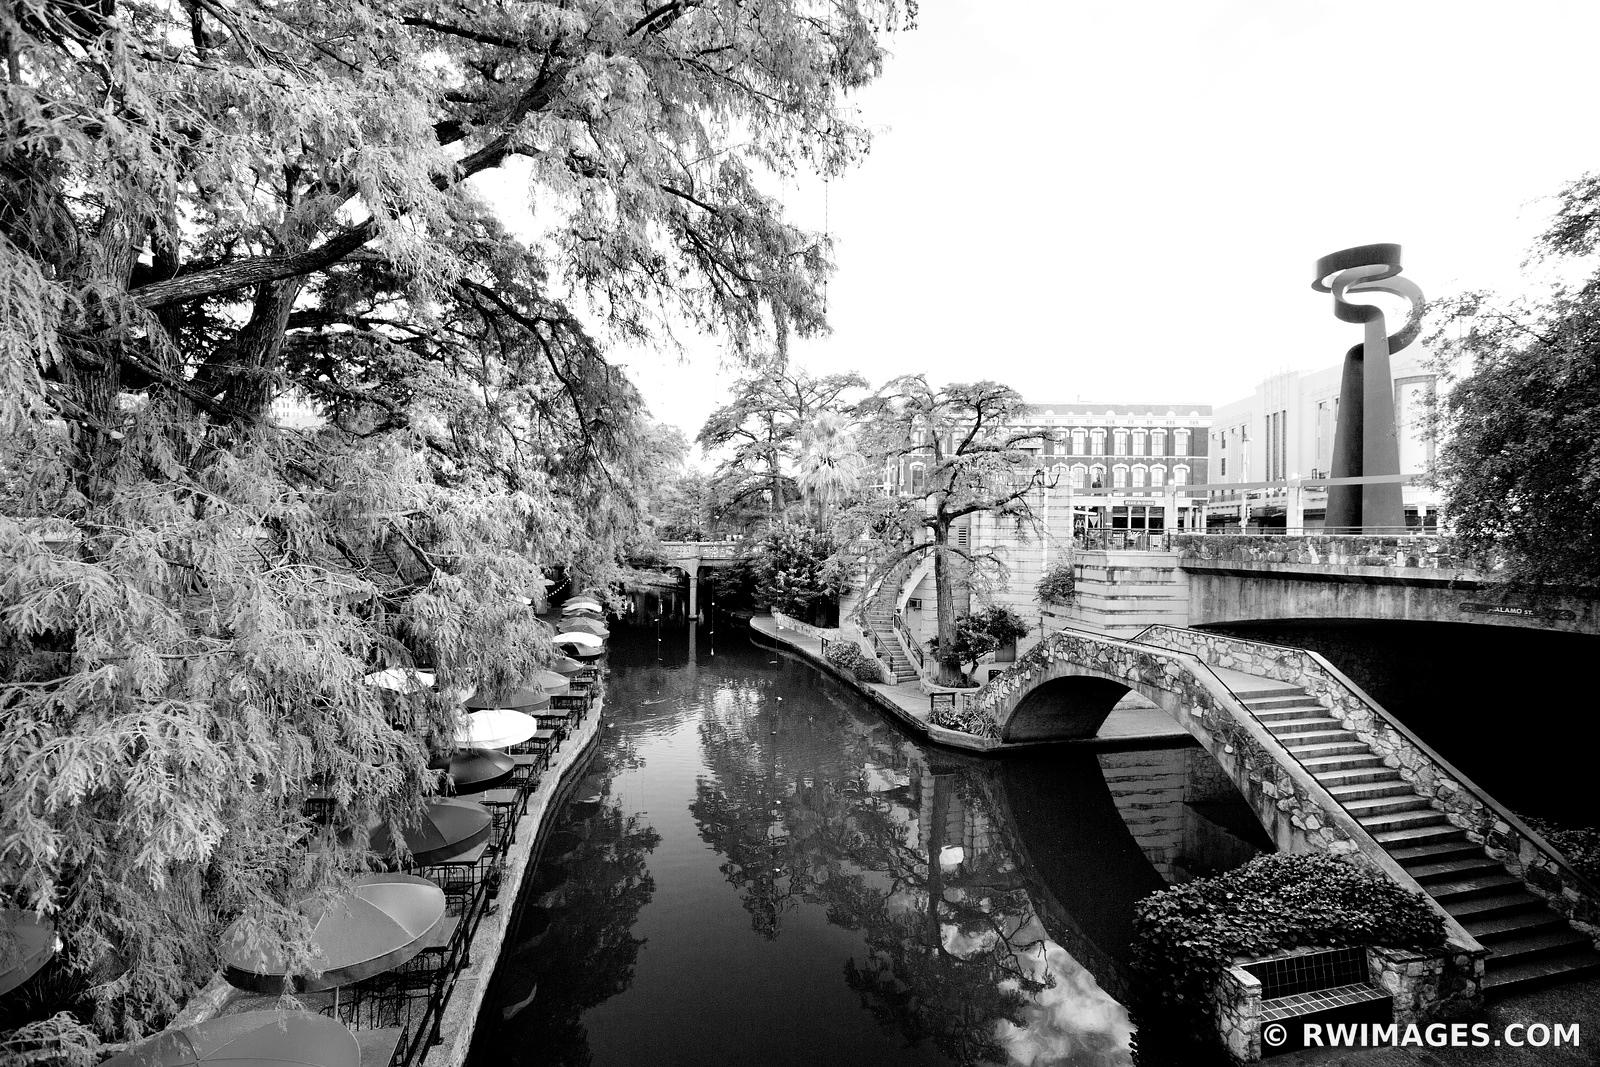 RIVER WALK SAN ANTONIO TEXAS BLACK AND WHITE